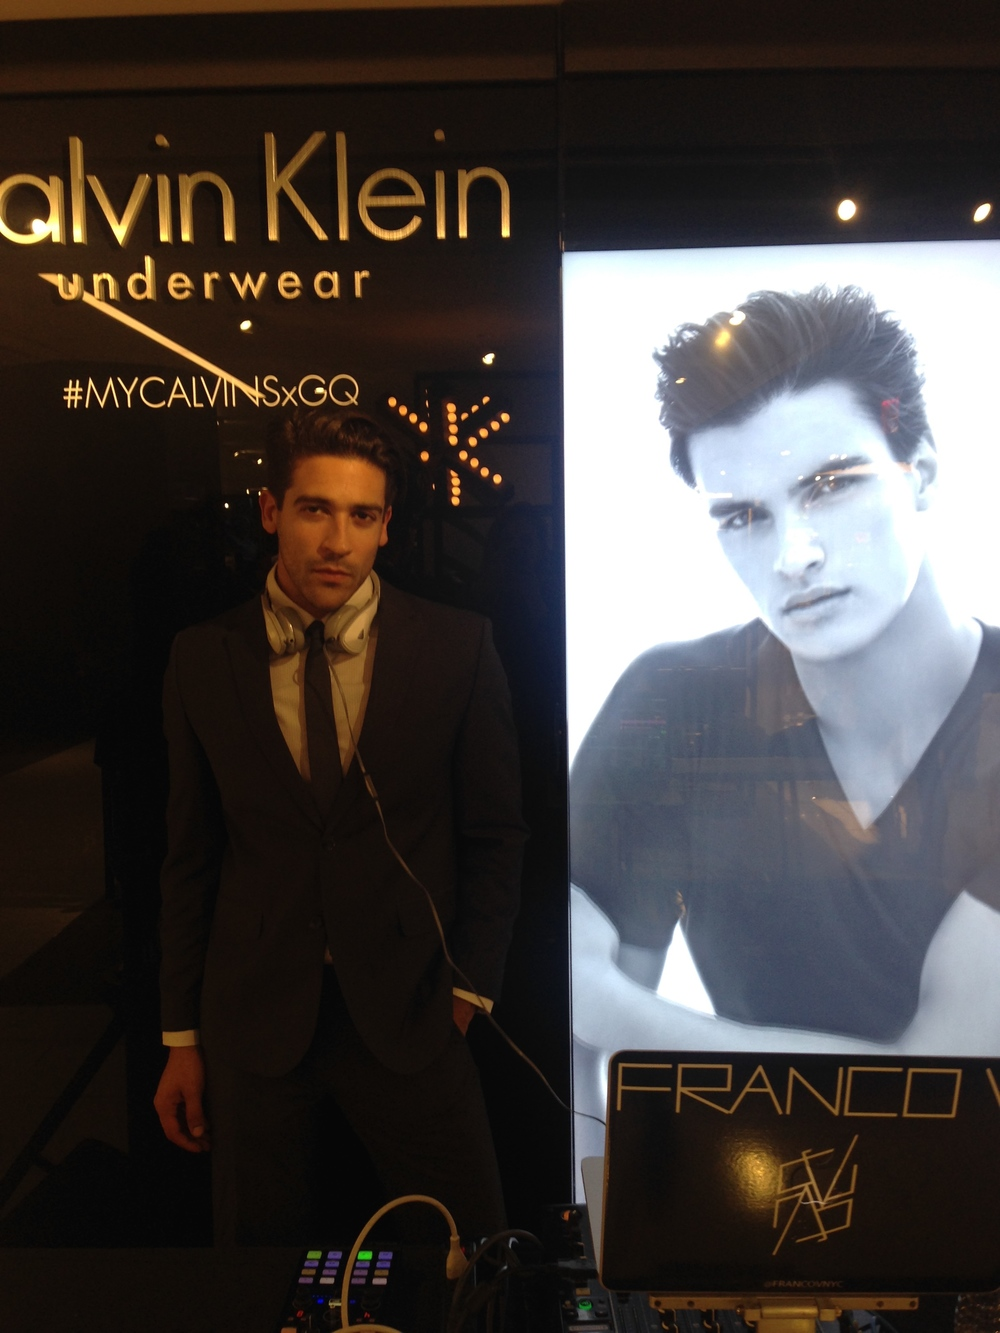 Franco V Djing for Calvin Klein x GQ